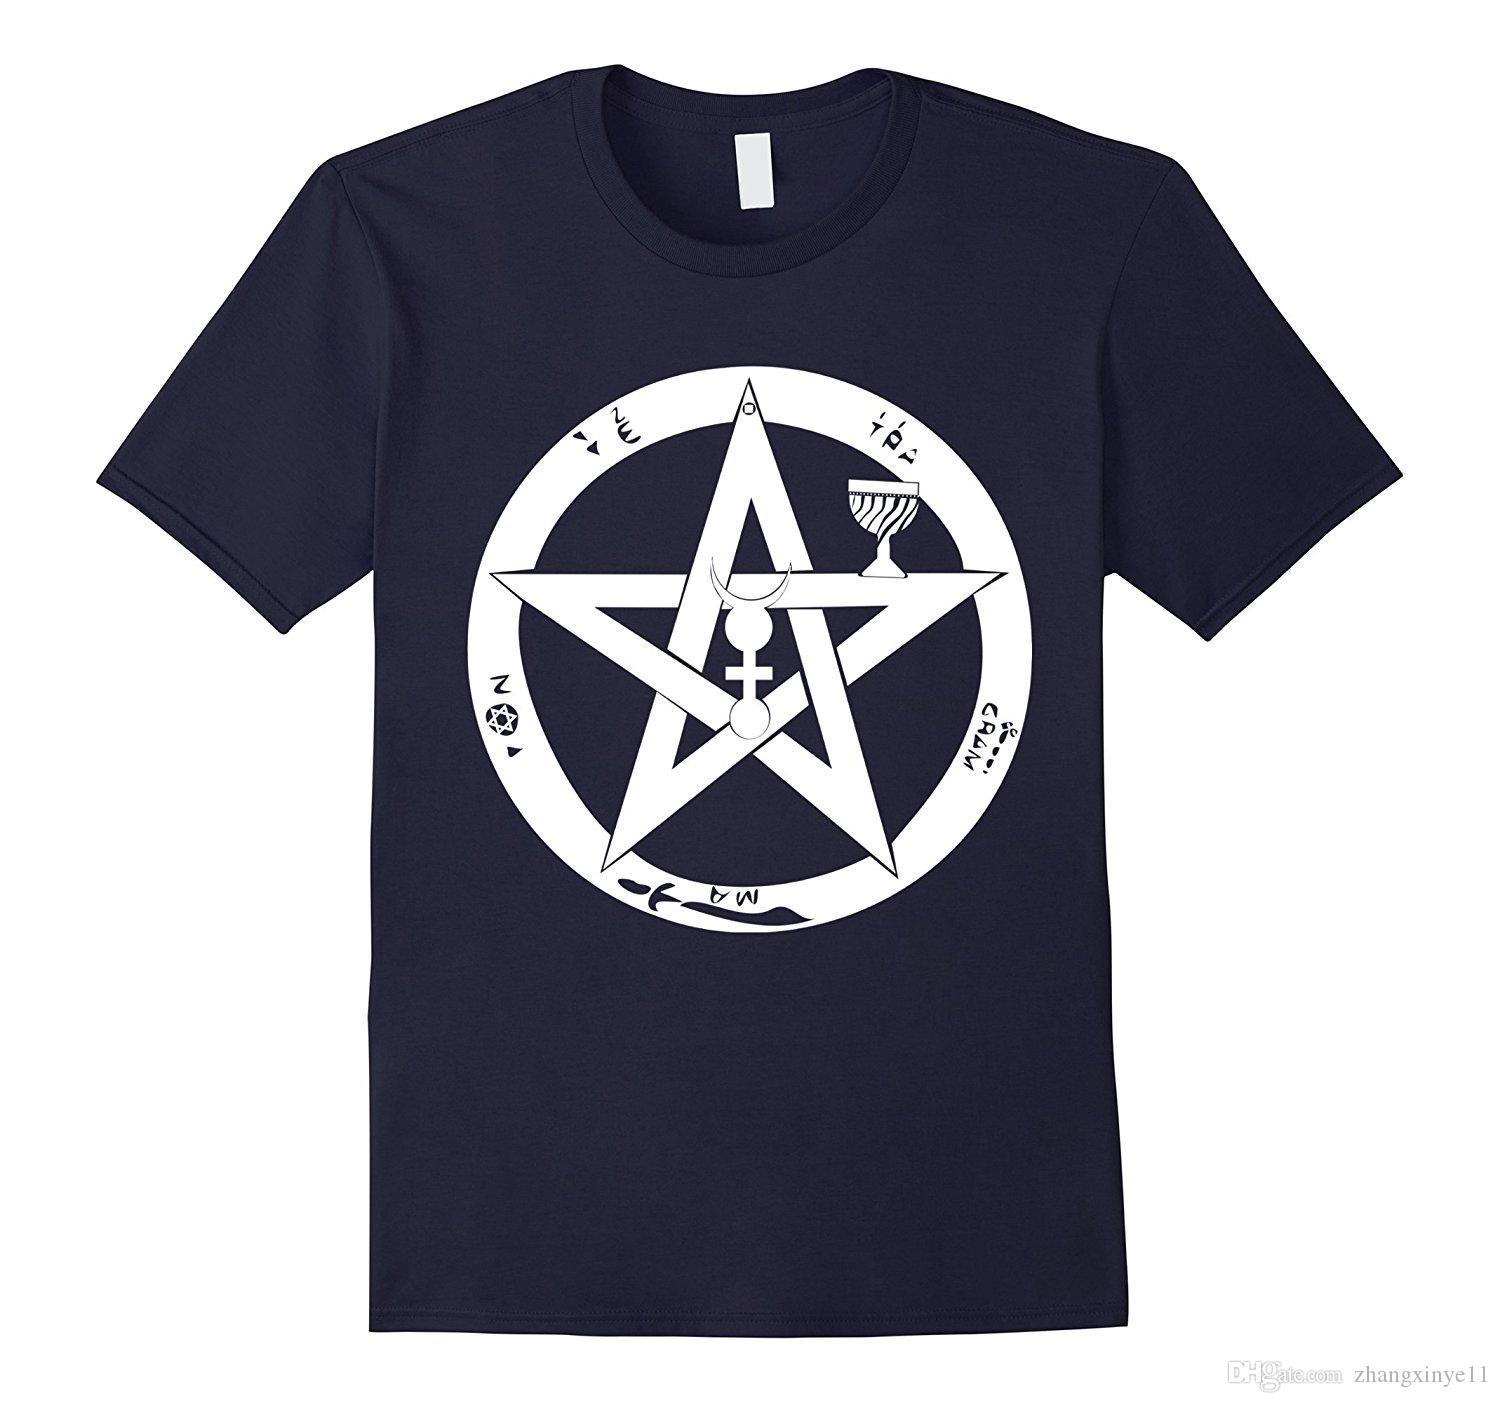 Wicca Protection Symbol T Shirt Wiccan Pentagram Pagan Tee The T